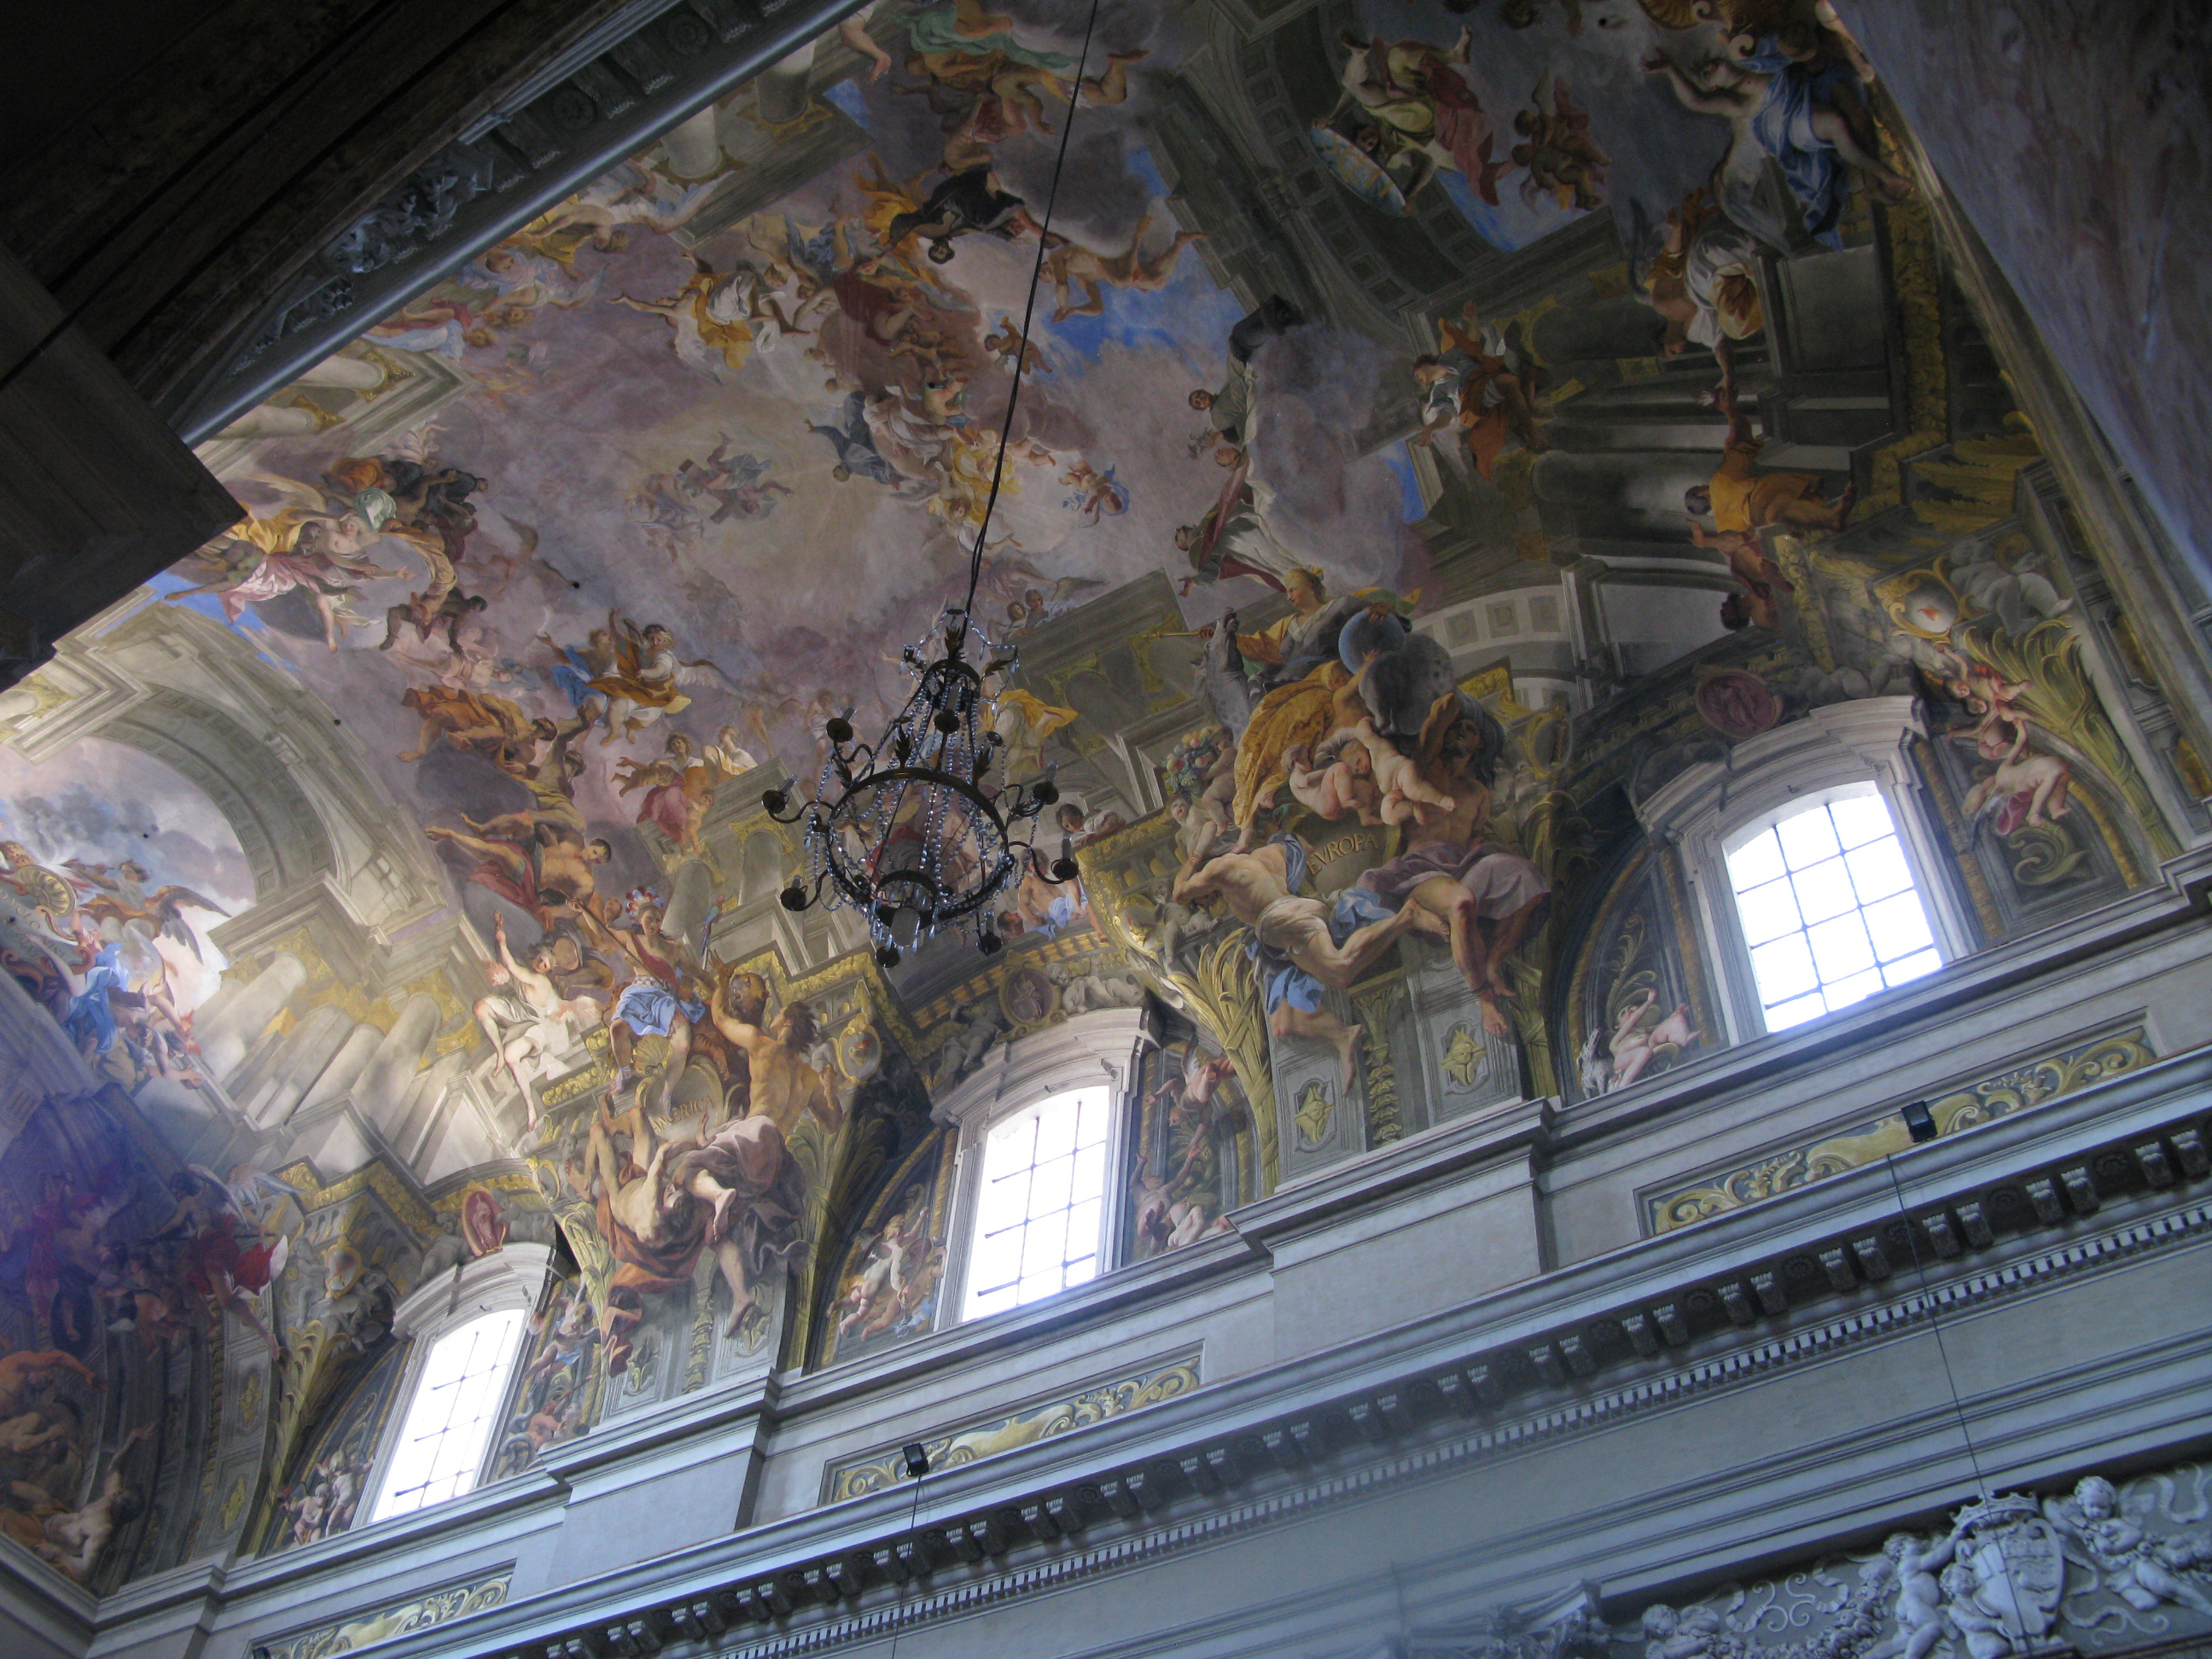 A year old fresco by andrea pozzo the entire ceiling